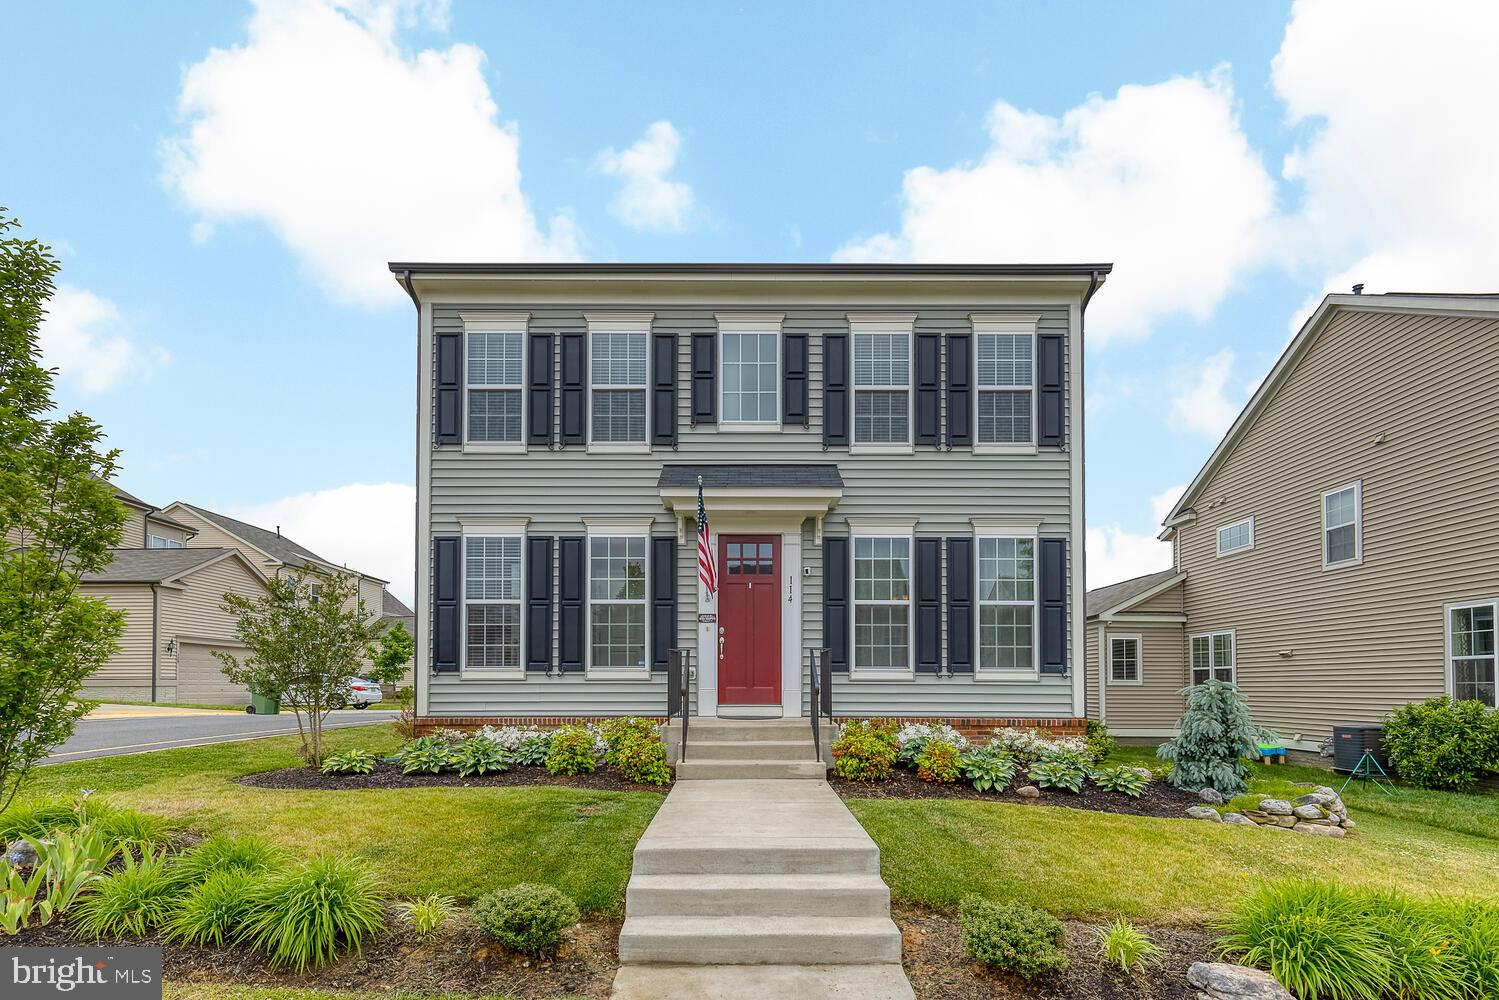 Welcome home to this beautiful solar-powered 3-level colonial in Phase 1 of the sought-after Embrey Mill neighborhood! Professionally landscaped corner lot located just 100 yards from Firepit Park and 100 yards to Festival Park. This home is gorgeous from top to bottom. There are hardwood floors throughout the main level, including the separate dining room, family room and living area. The gourmet kitchen features an oversized island, custom range hood & backsplash, granite counters & stainless steel appliances. The kitchen opens to the family room, which features a gas fireplace and surround sound. The large master bedroom offers an elegant tray ceiling, his and hers closets and bathroom with dual vanities, water closet and an oversized shower. The bedroom level also has three additional bedrooms, two additional full baths and an updated laundry area. The basement offers a spacious rec room and fourth full bathroom. There is also tons of space for storage or future growth.  The lovely backyard is fully fenced with a stamped concrete patio and lighting.  Upgrades include new washer and dryer, an updated laundry area, new ecobee smart thermostat, Ring doorbell, EcoDuct whole house HVAC filter, professional landscaping, an irrigation system and a new solar system that has nearly eliminated electric bills.  All of this located in the Colonial Forge High School district, plus the amenities in Embrey Mill, which includes walking/jogging/biking trails, a dog park, a soccer field, community pool, and so much more. Next to Publix. See it today!